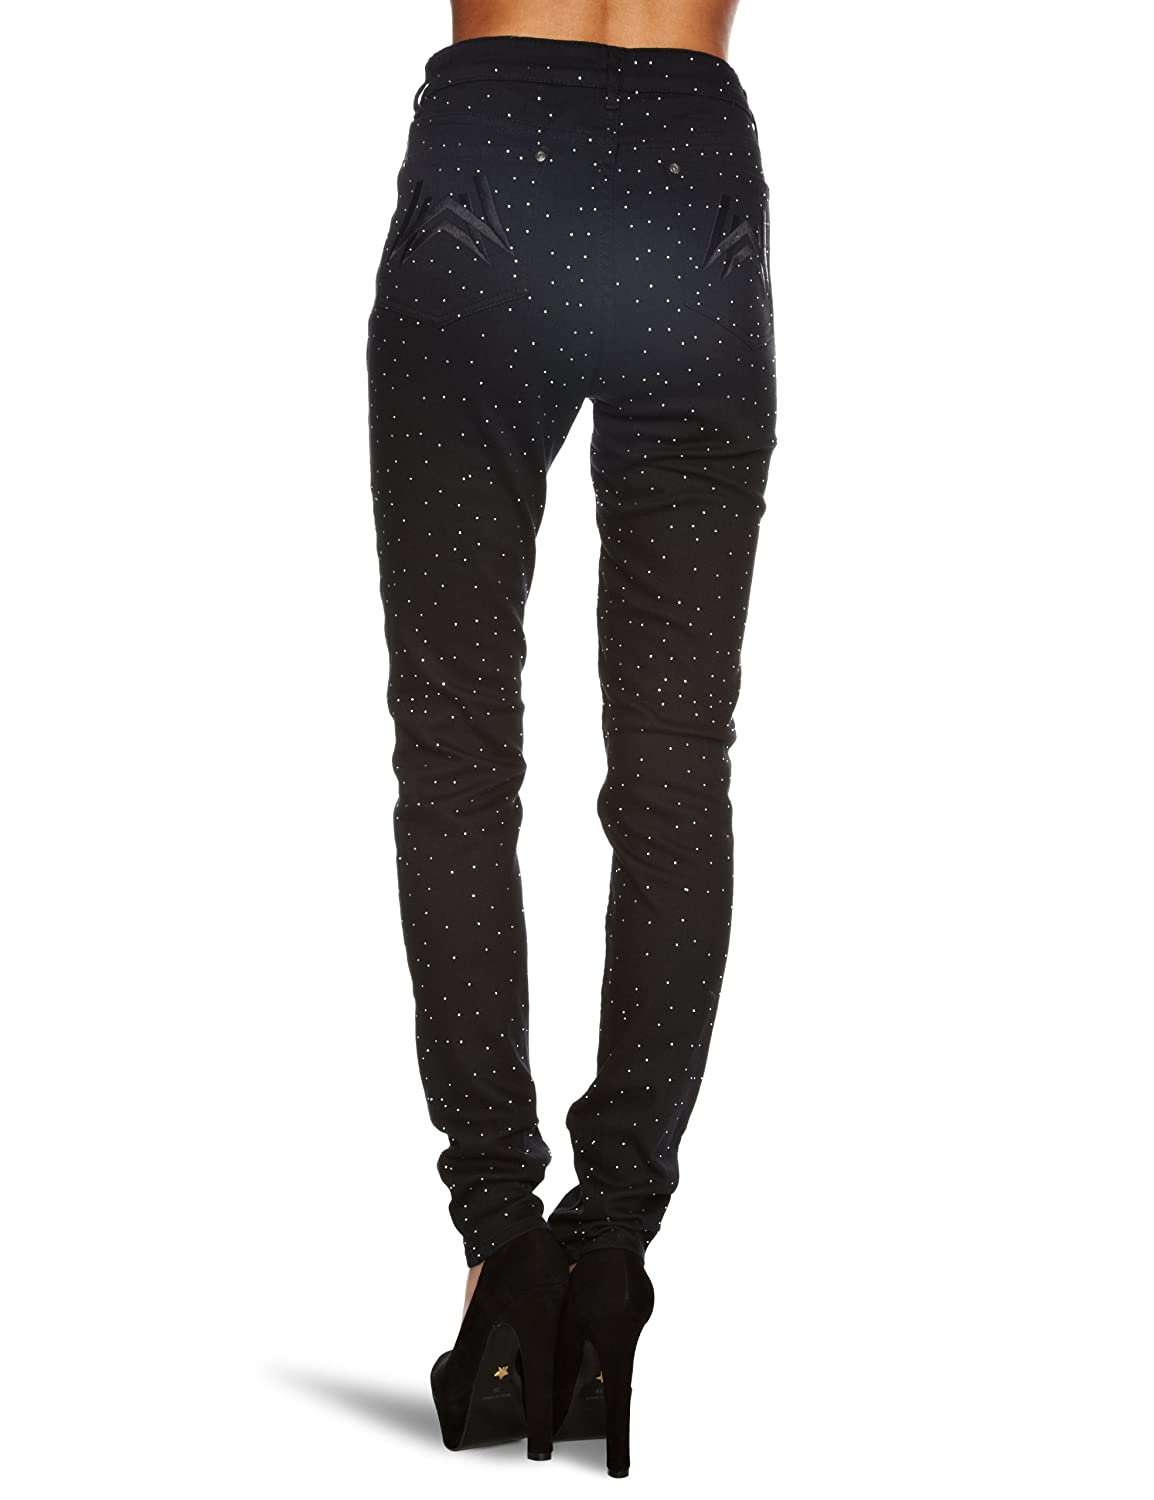 Discount Excellent Nicekicks Wizard Gina Diamante Skinny Womens Jeans Jet Black Wizard Jeans qixUT5